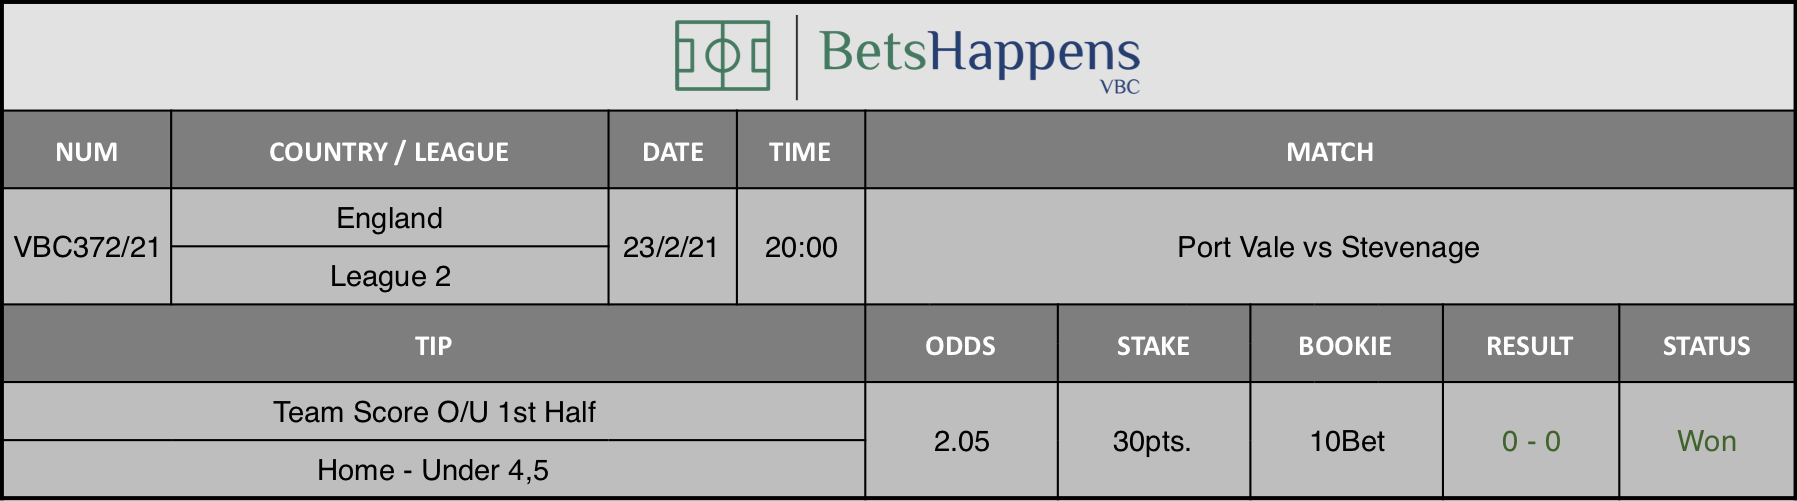 Results of our tip for the Port Vale vs Stevenage match where Team Score O/U 1st Half  Home - Under 4,5 is recommended.